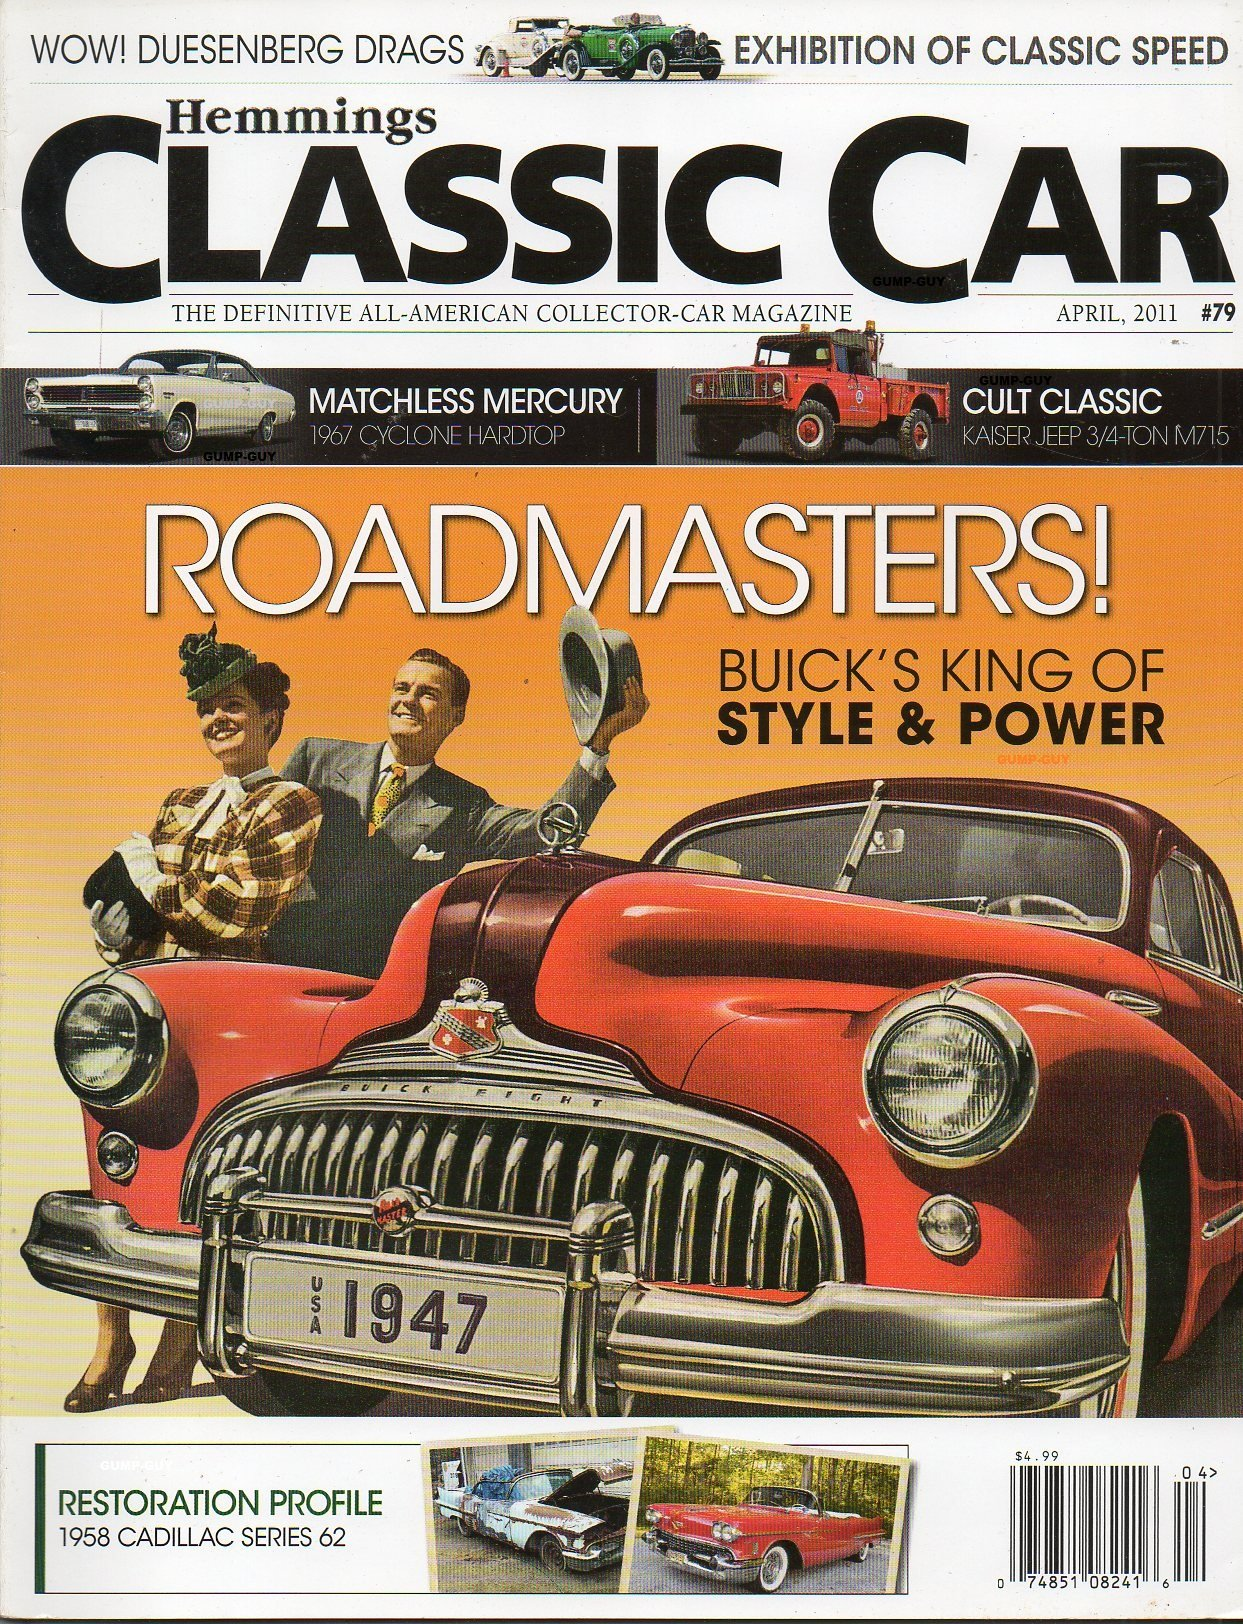 Hemmings Classic Car April 2011 The Definitive All-American ...